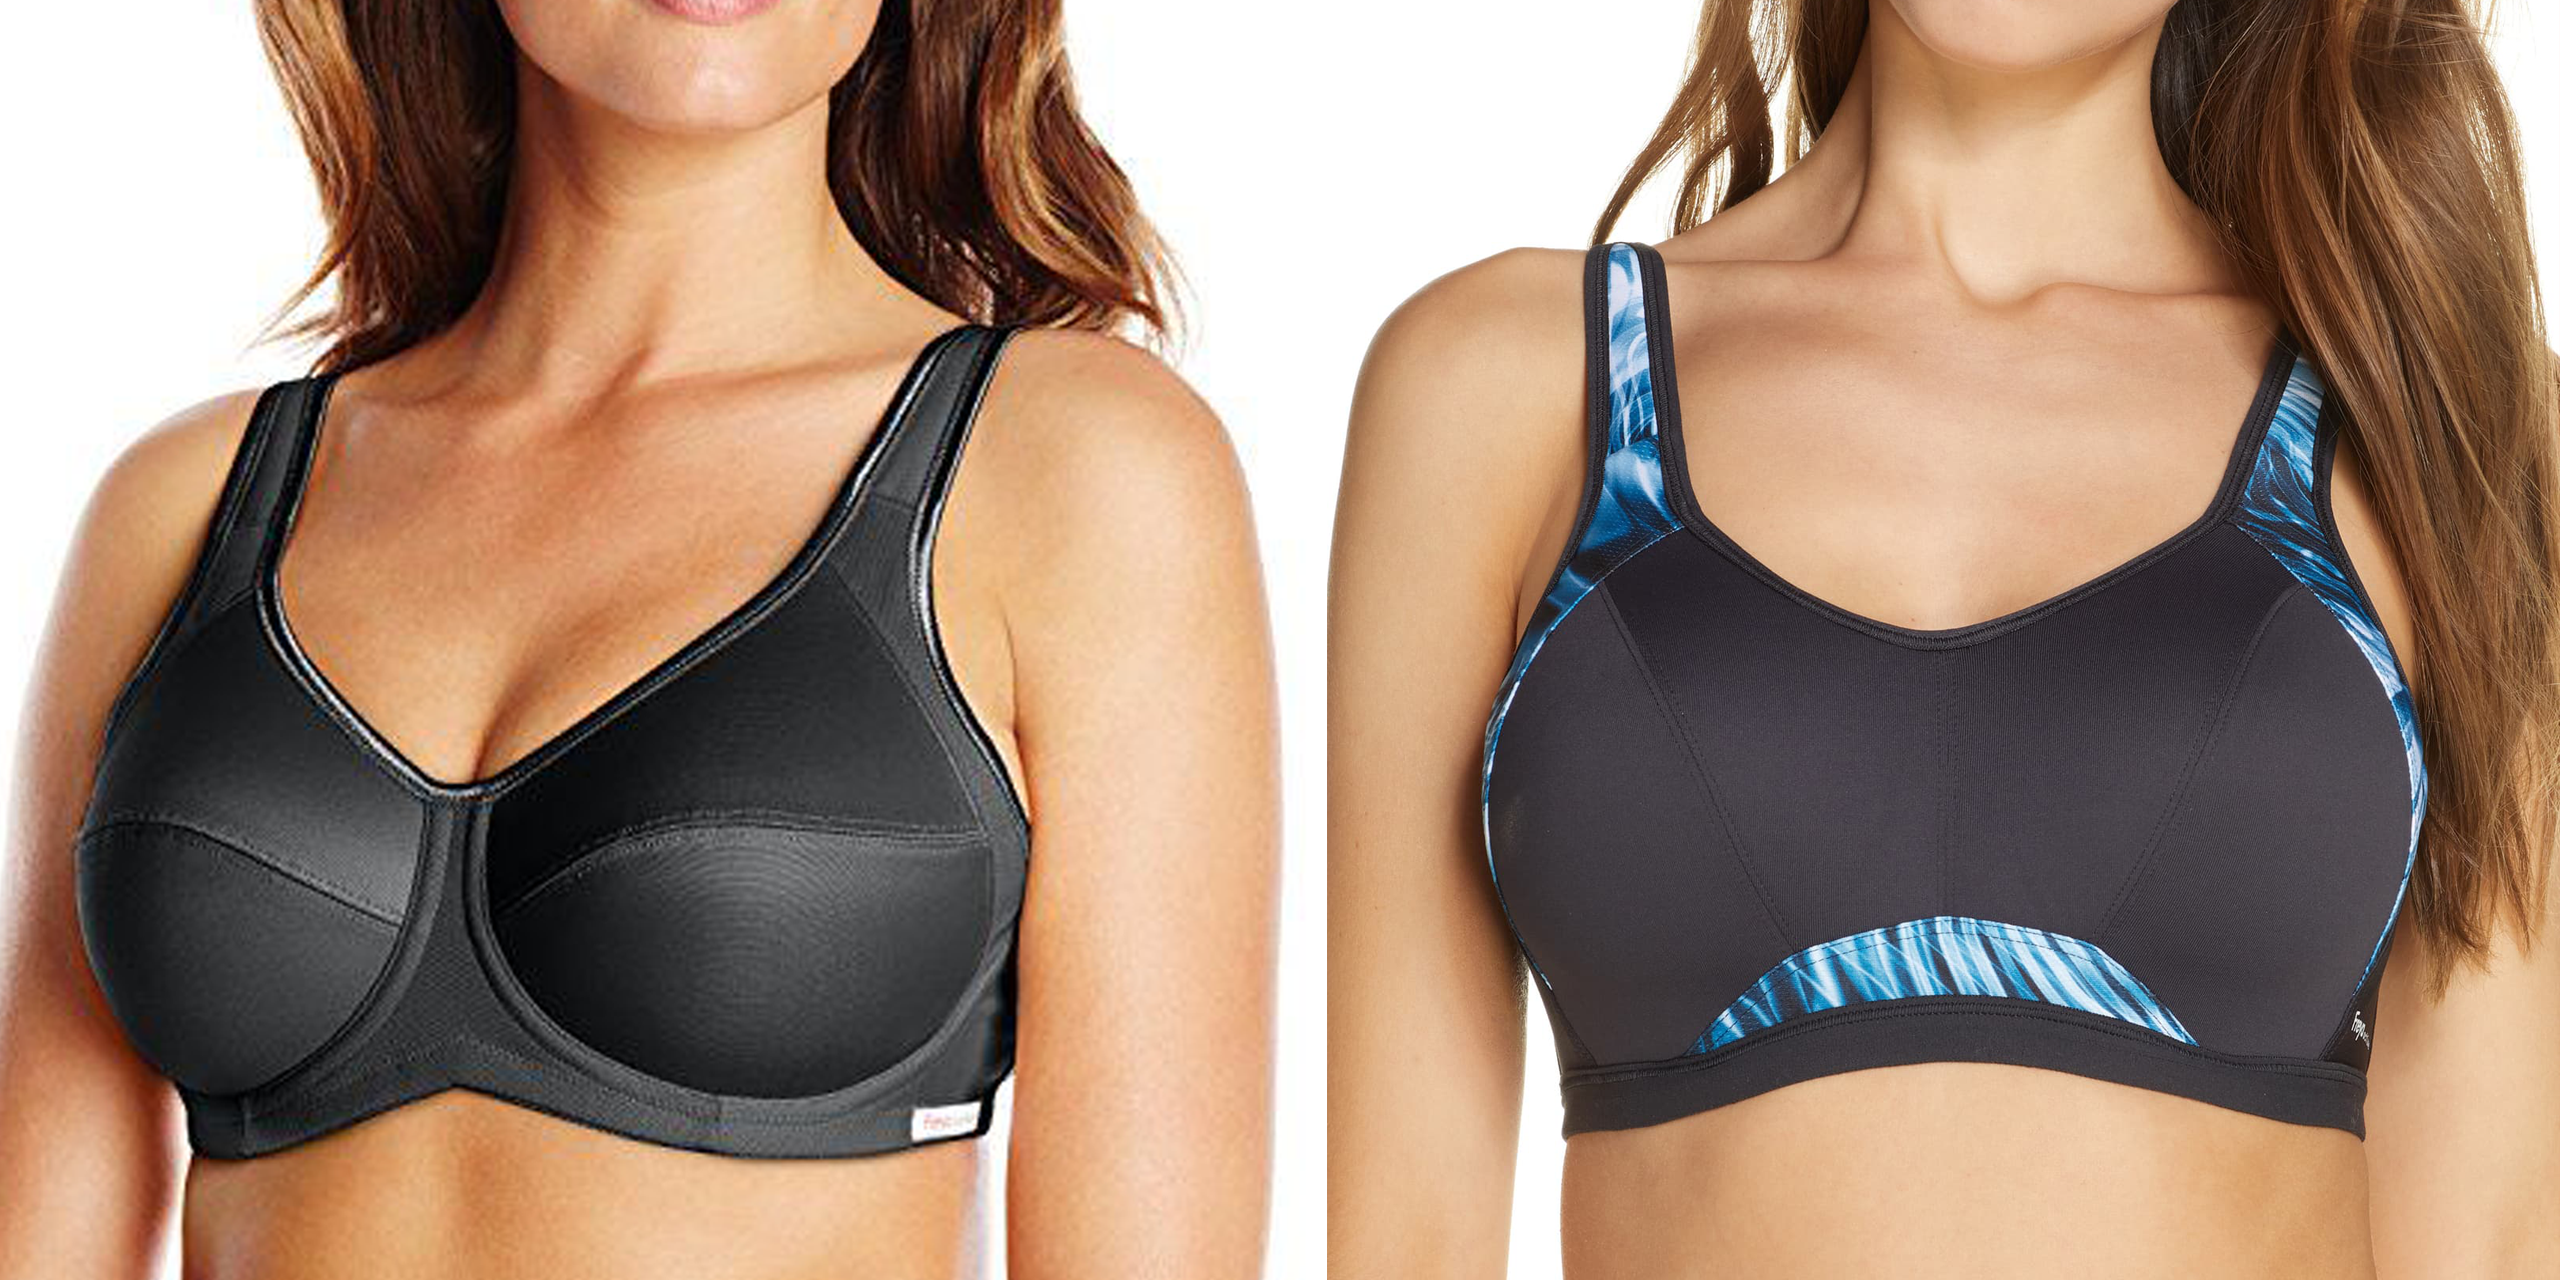 best high impact sports bra for large breasts